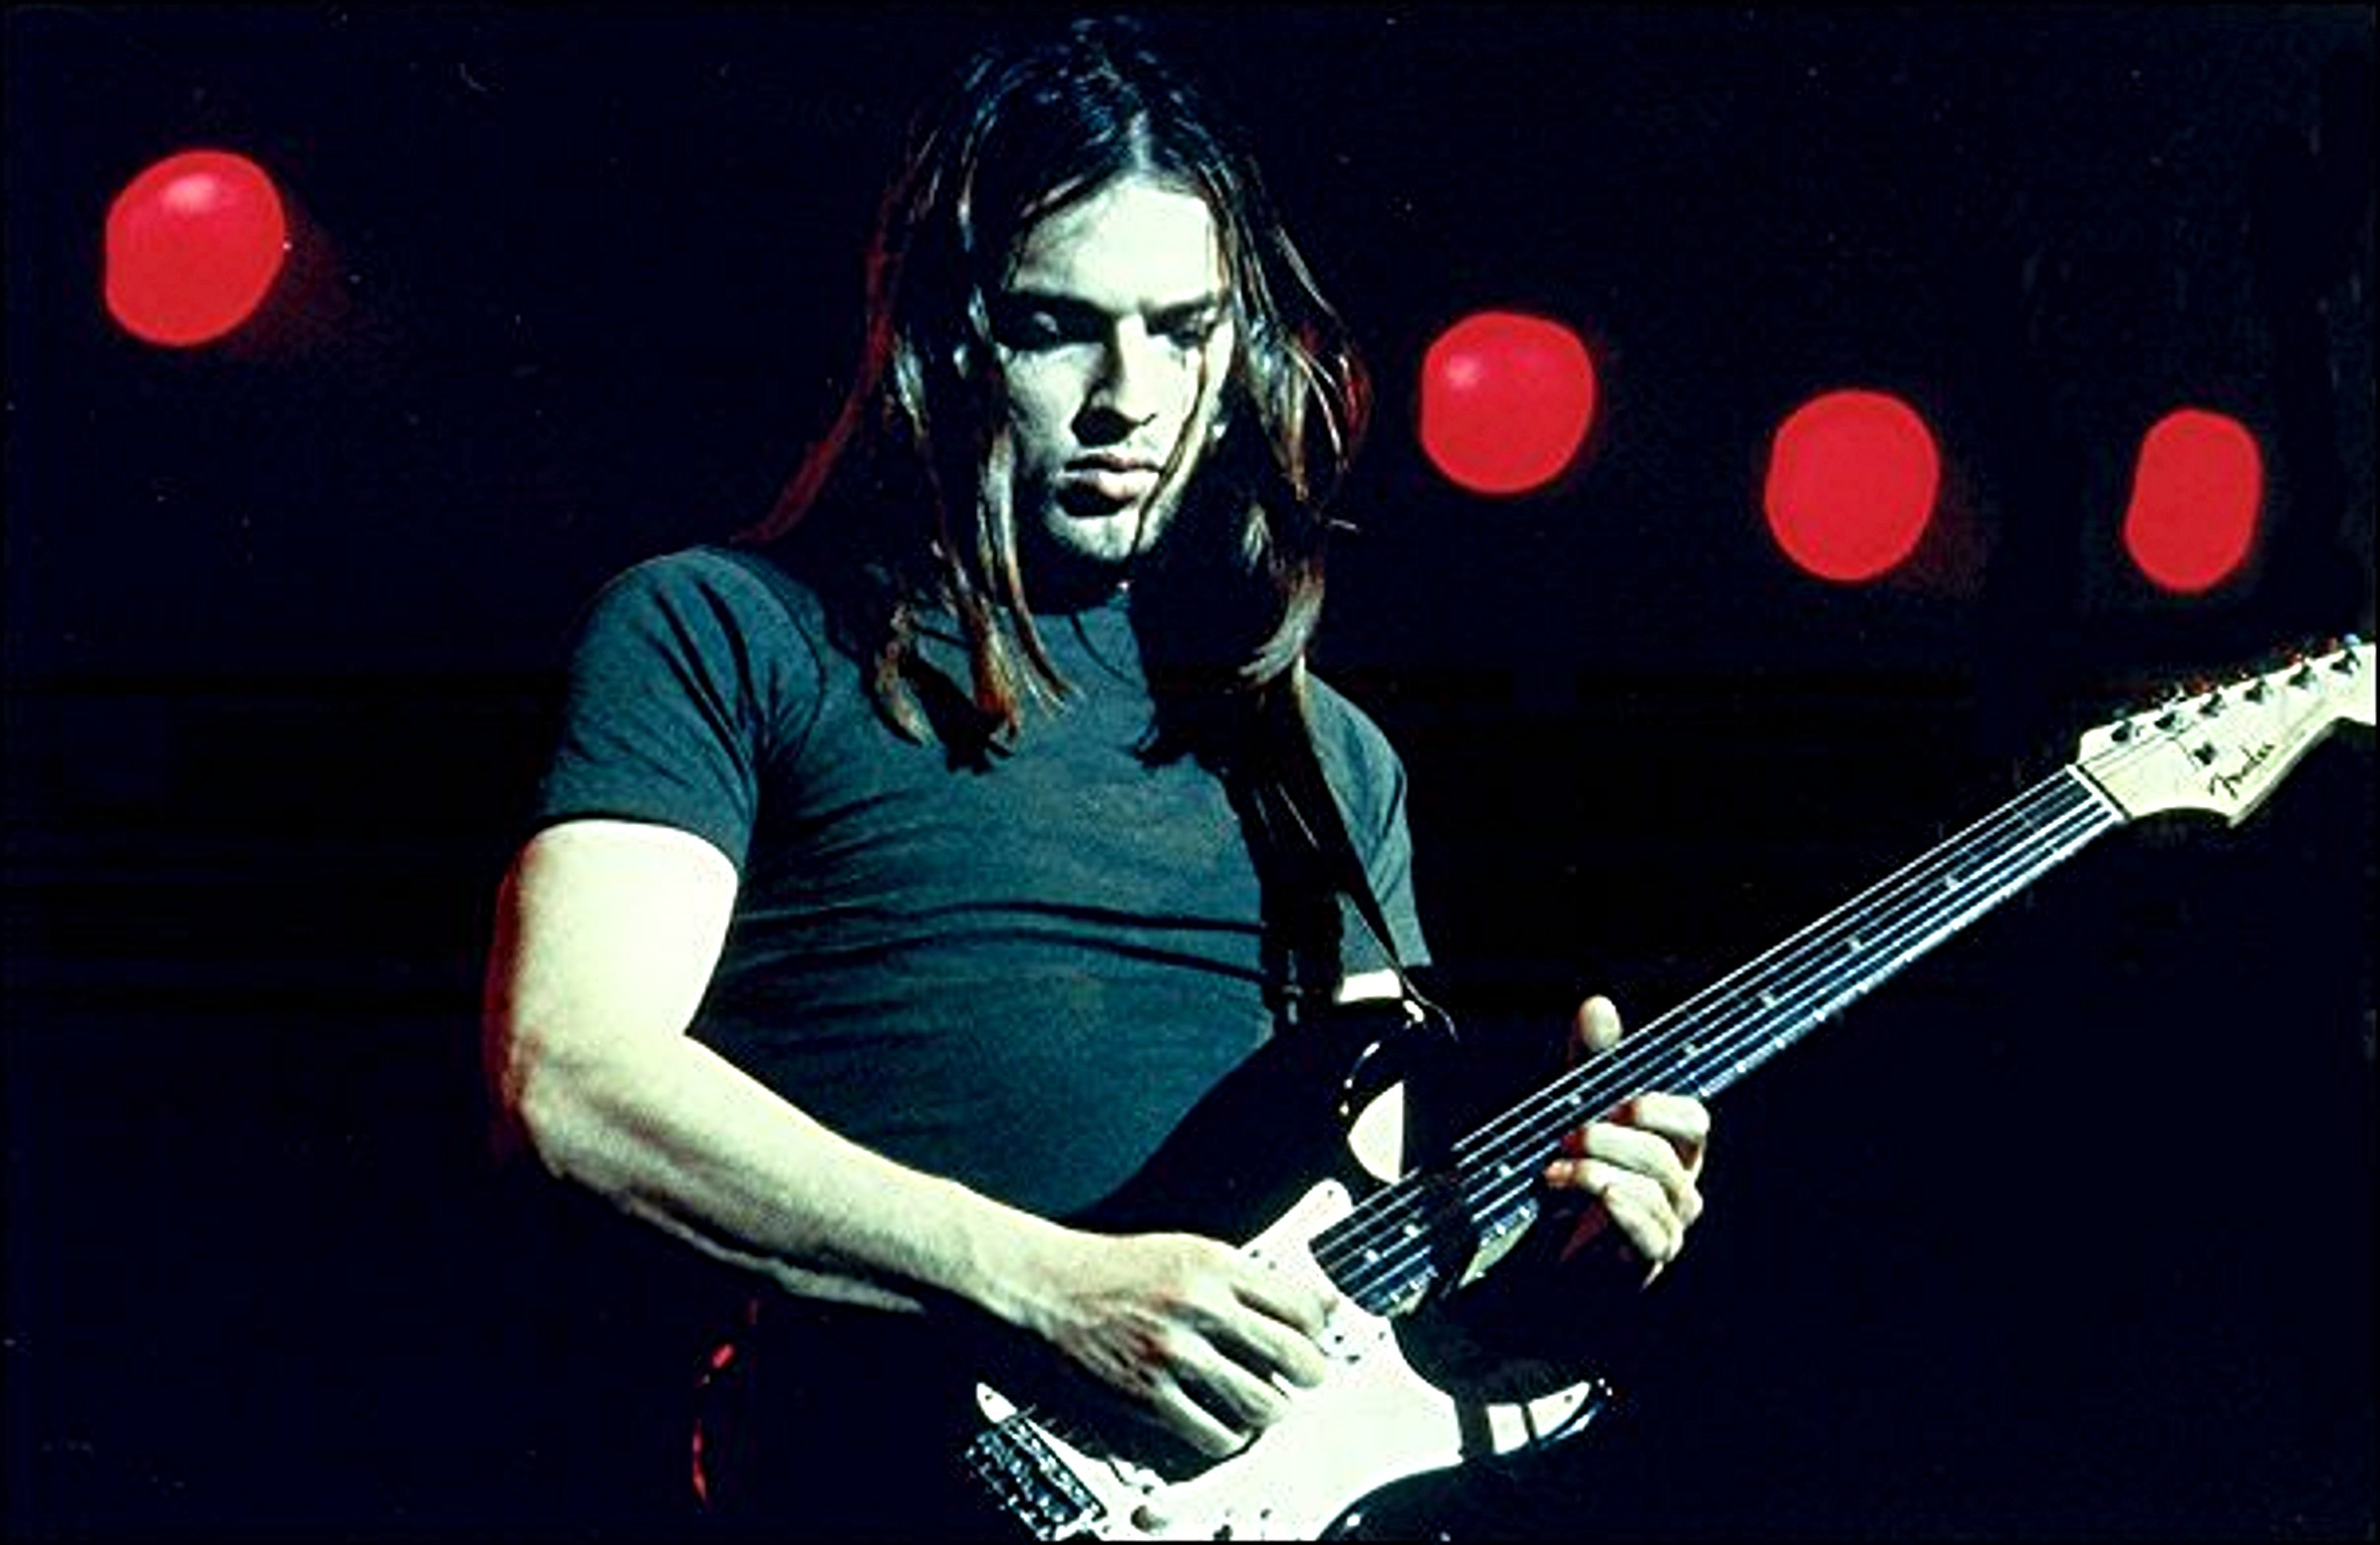 David Gilmour, guitariste béni des Pink Floyd... Amateur de riffs éternels, courrez écouter Wish You Were Here.